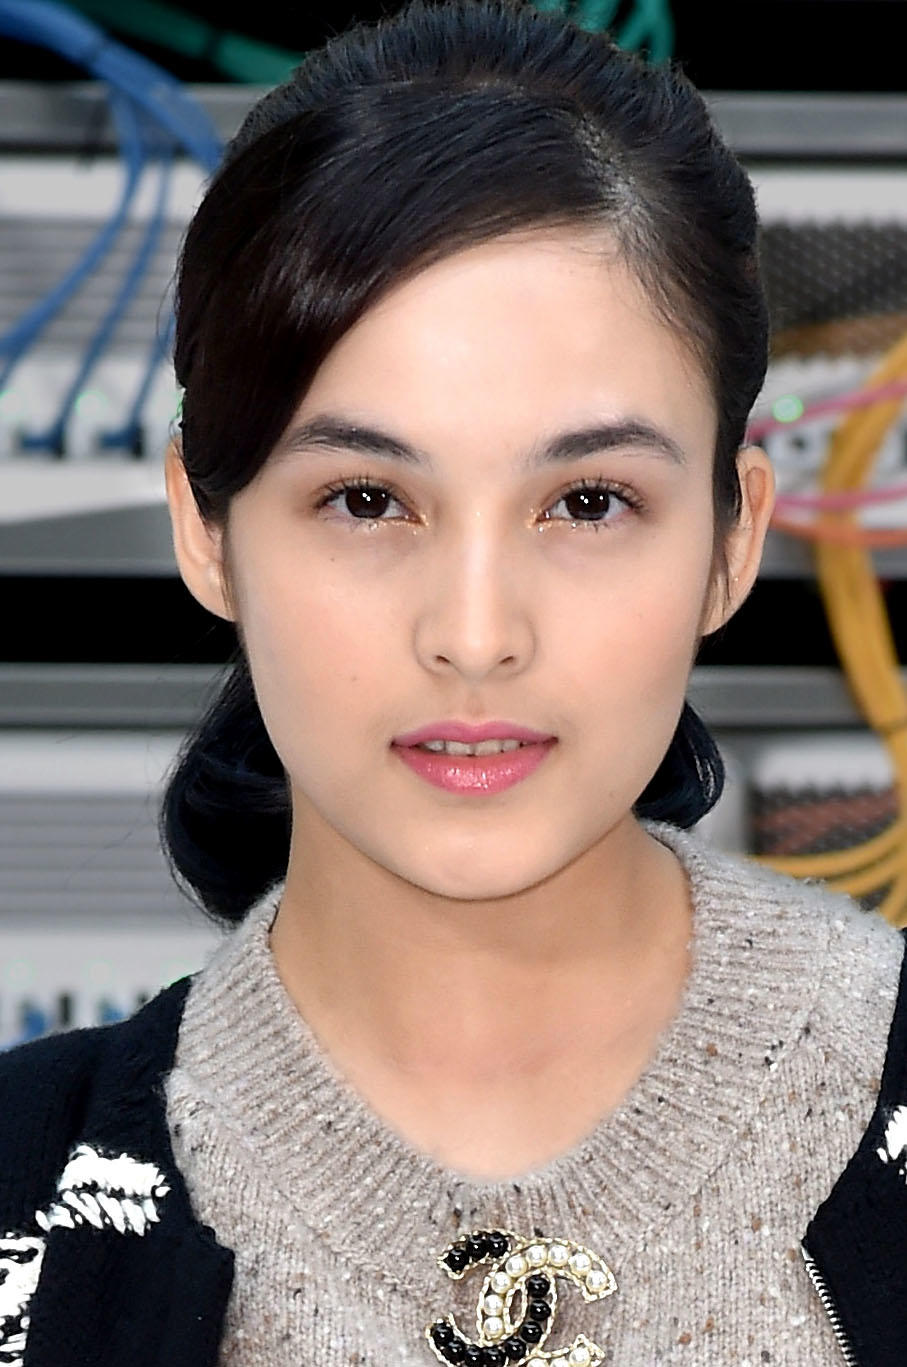 Chelsea Islan at the Chanel show during Paris Fashion Week.